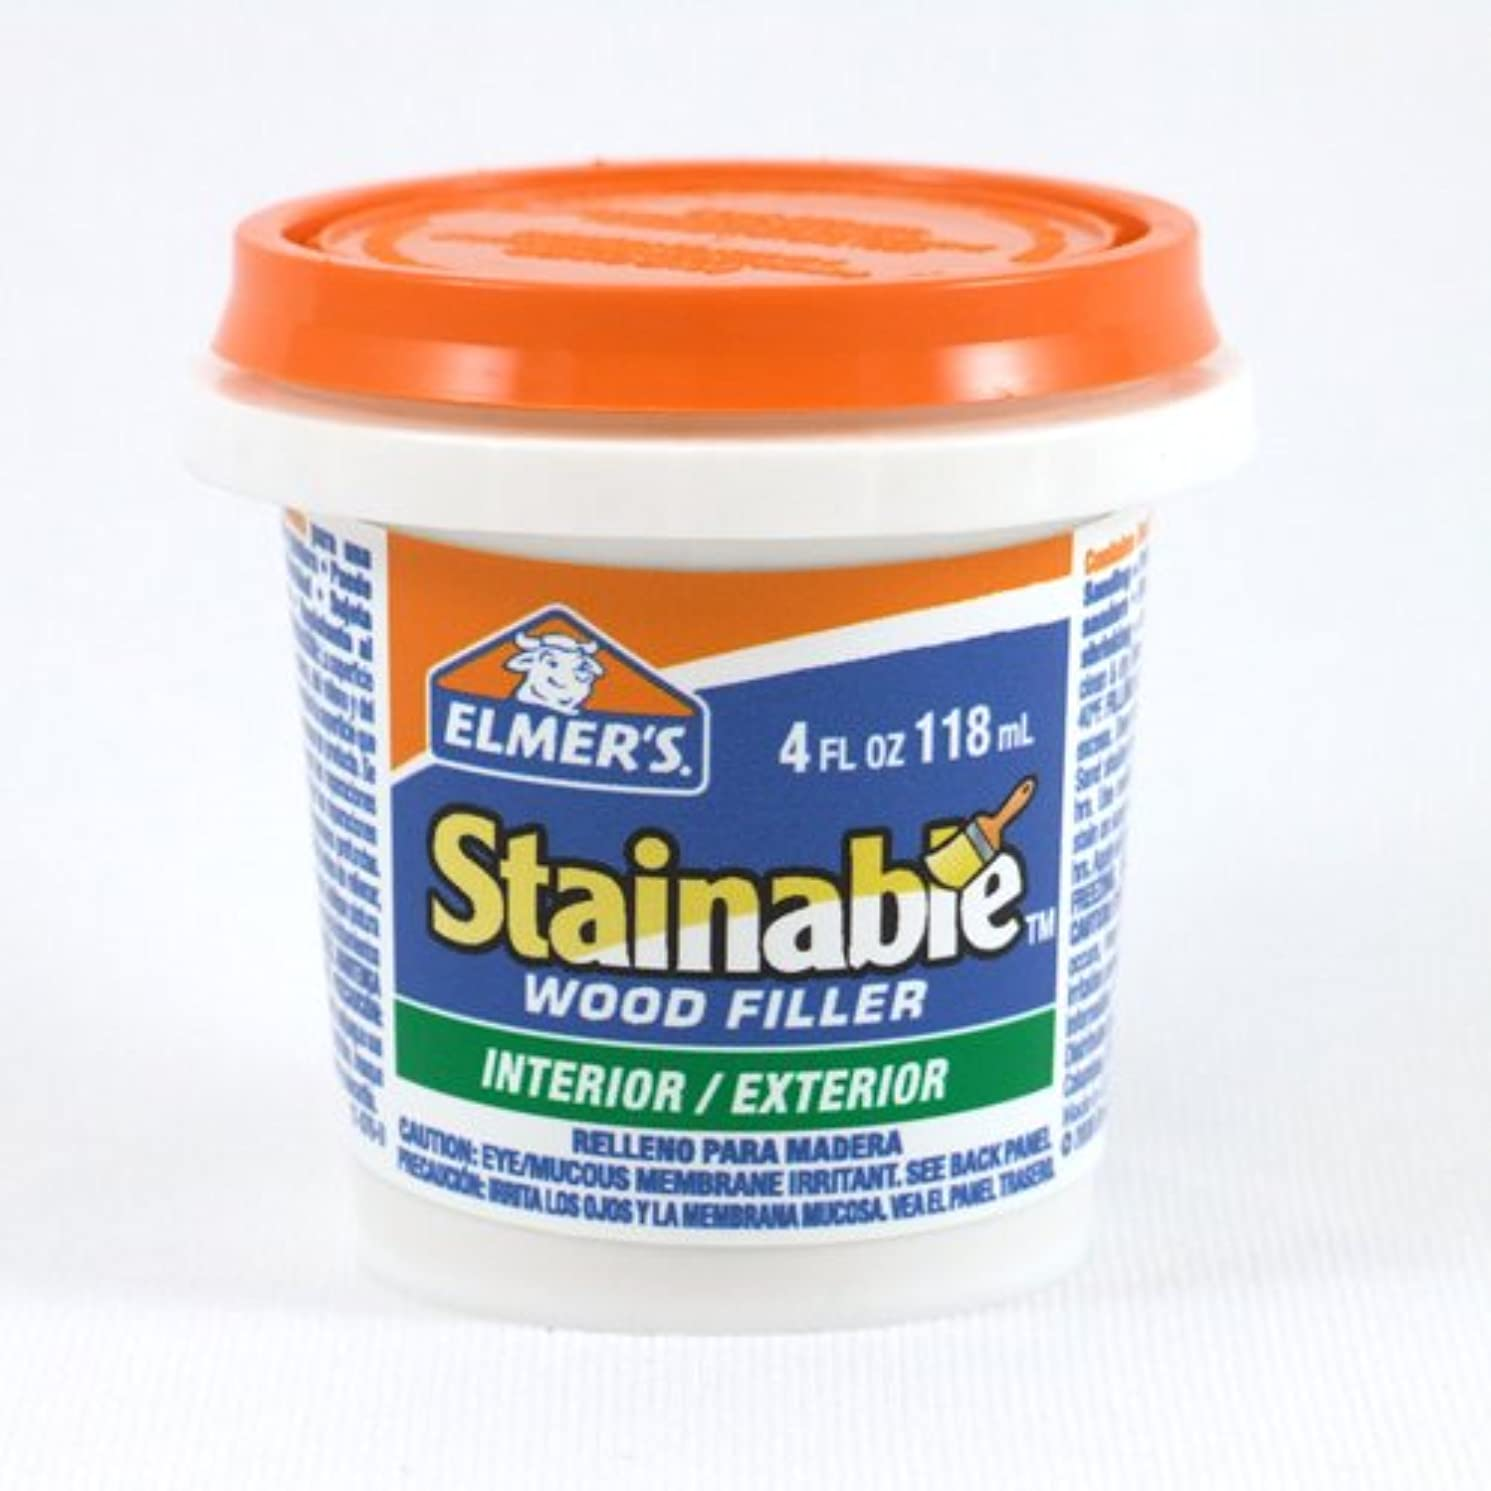 Elmer's Stainable Wood Filler, Interior/Exterior